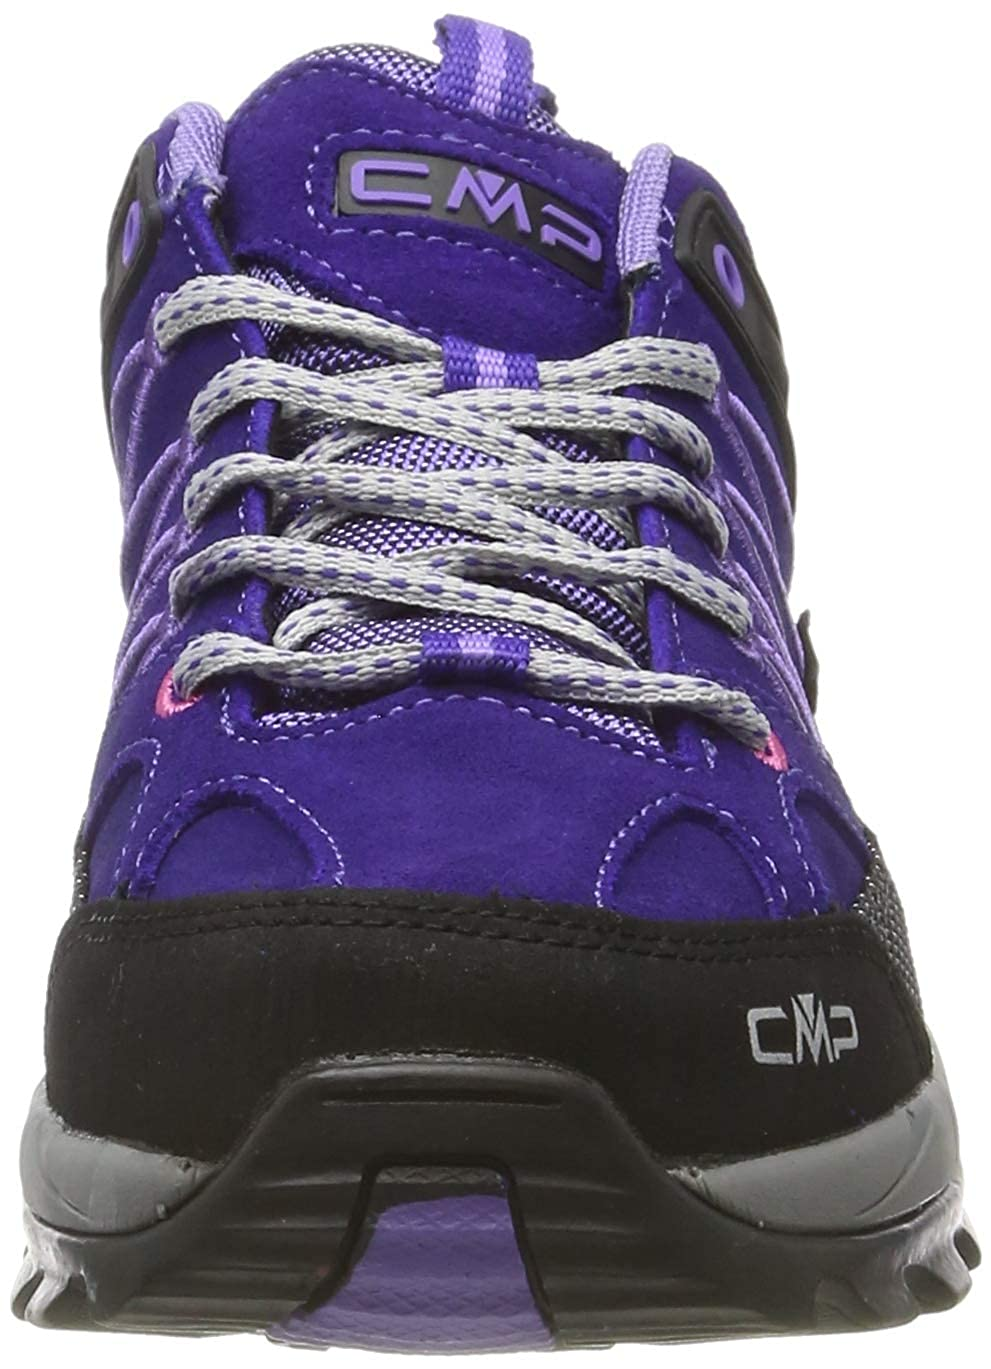 CMP Womens Rigel Low Rise Hiking Shoes